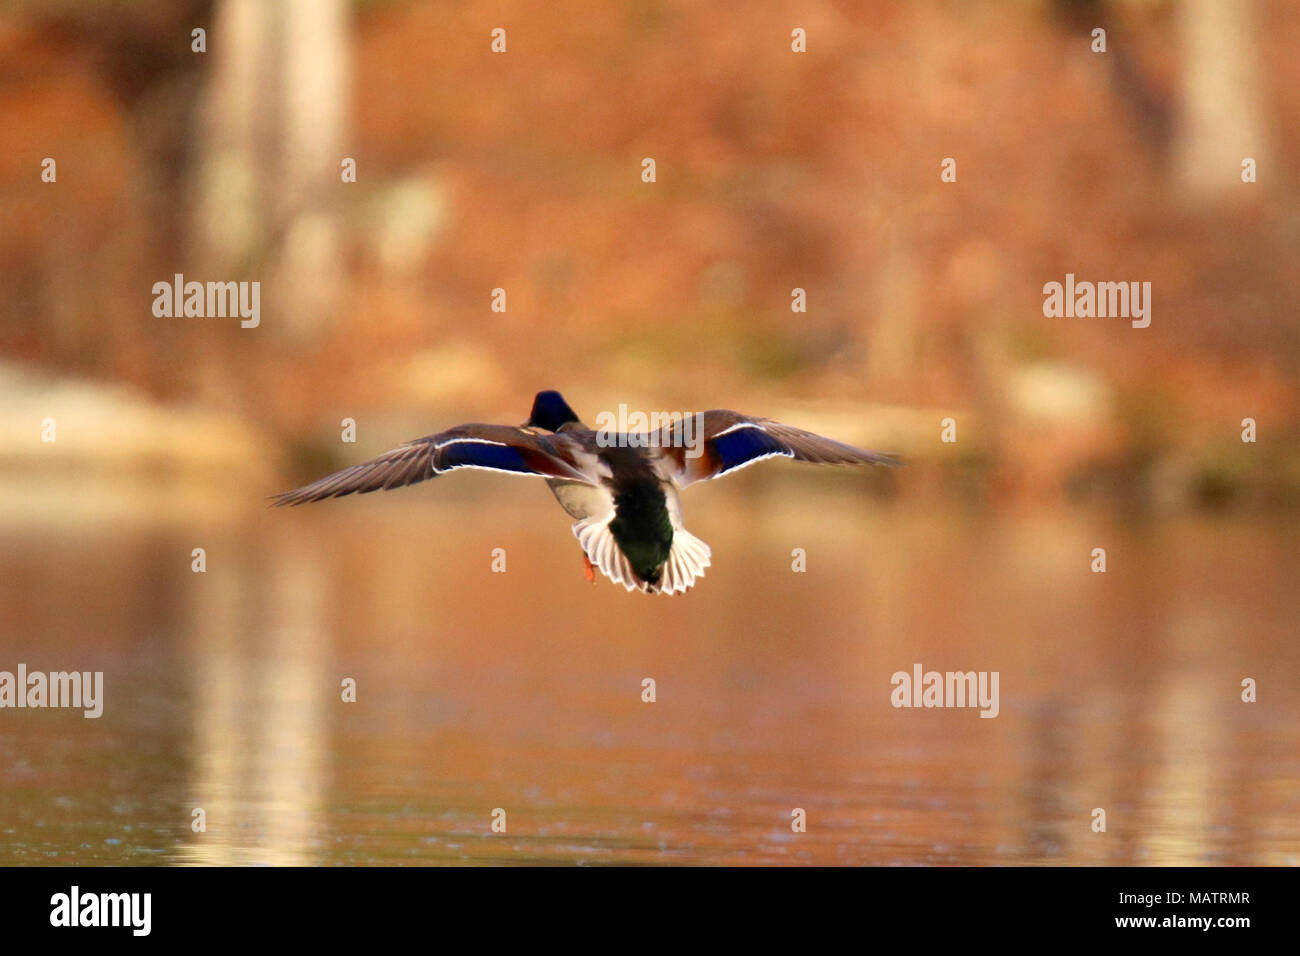 A mallard duck flying in to land on a lake in the late afternoon - Stock Image